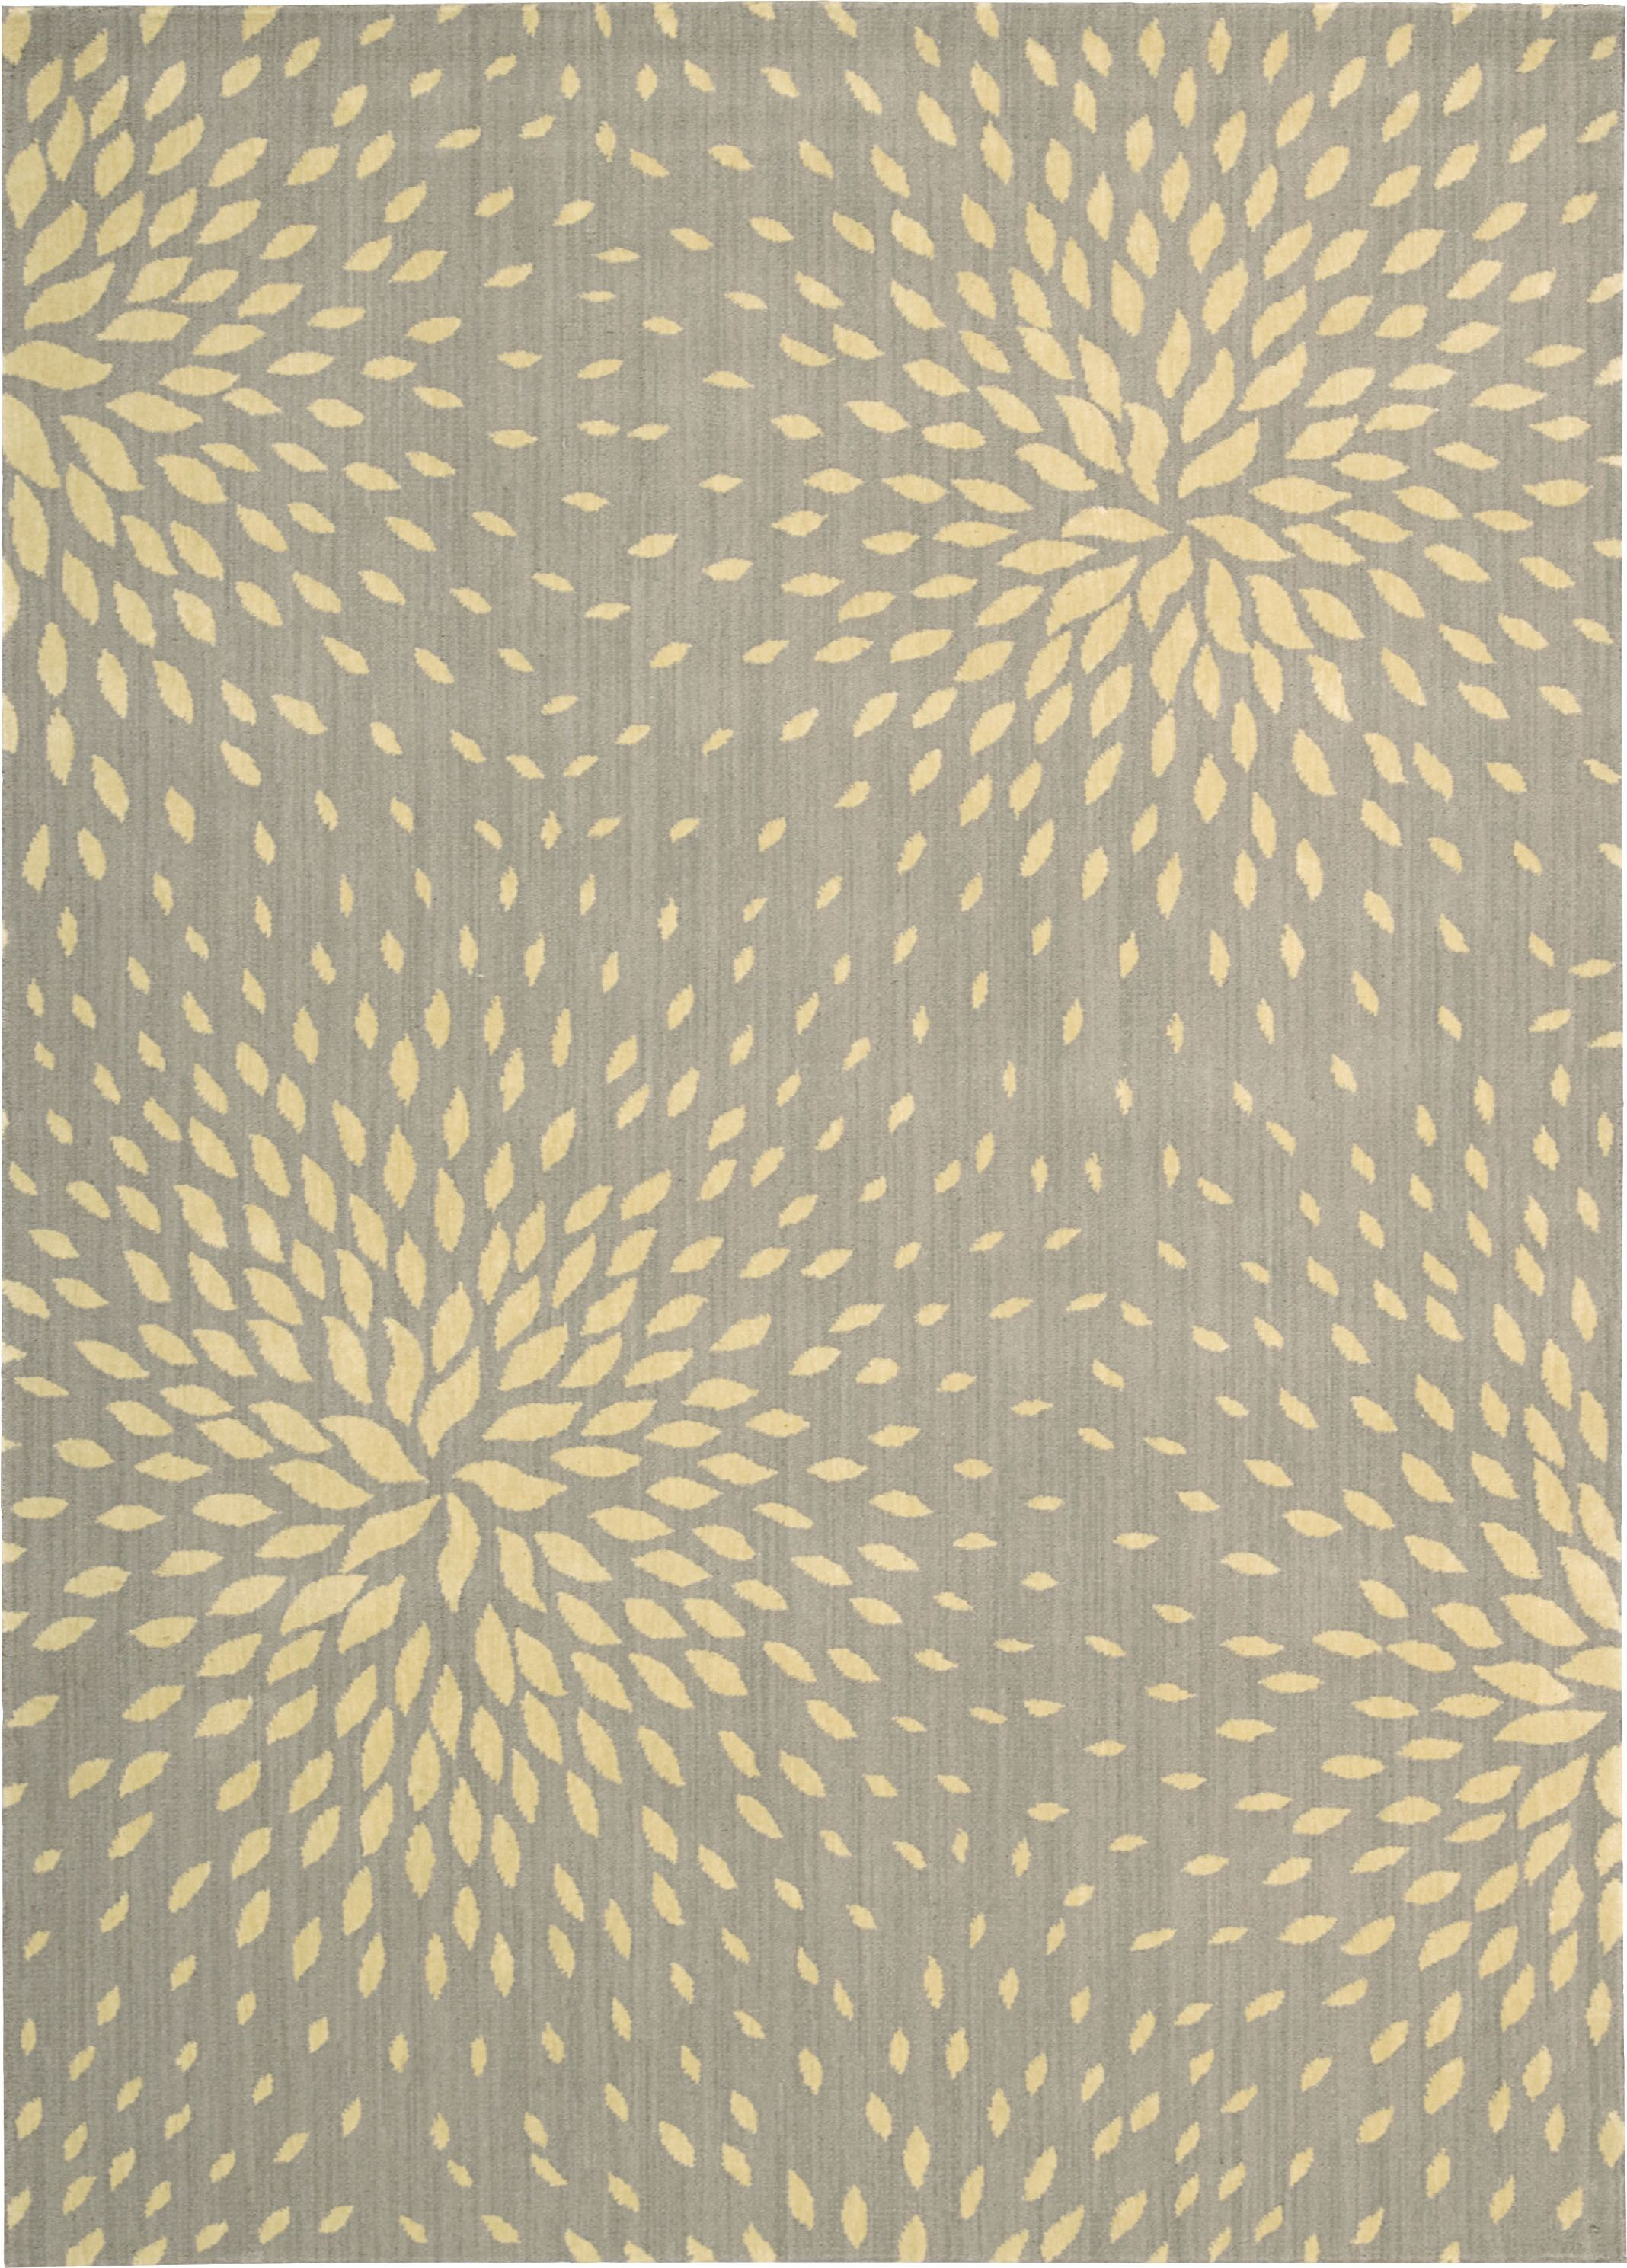 Jere Gray Area Rug Rug Size: Rectangle 9'6